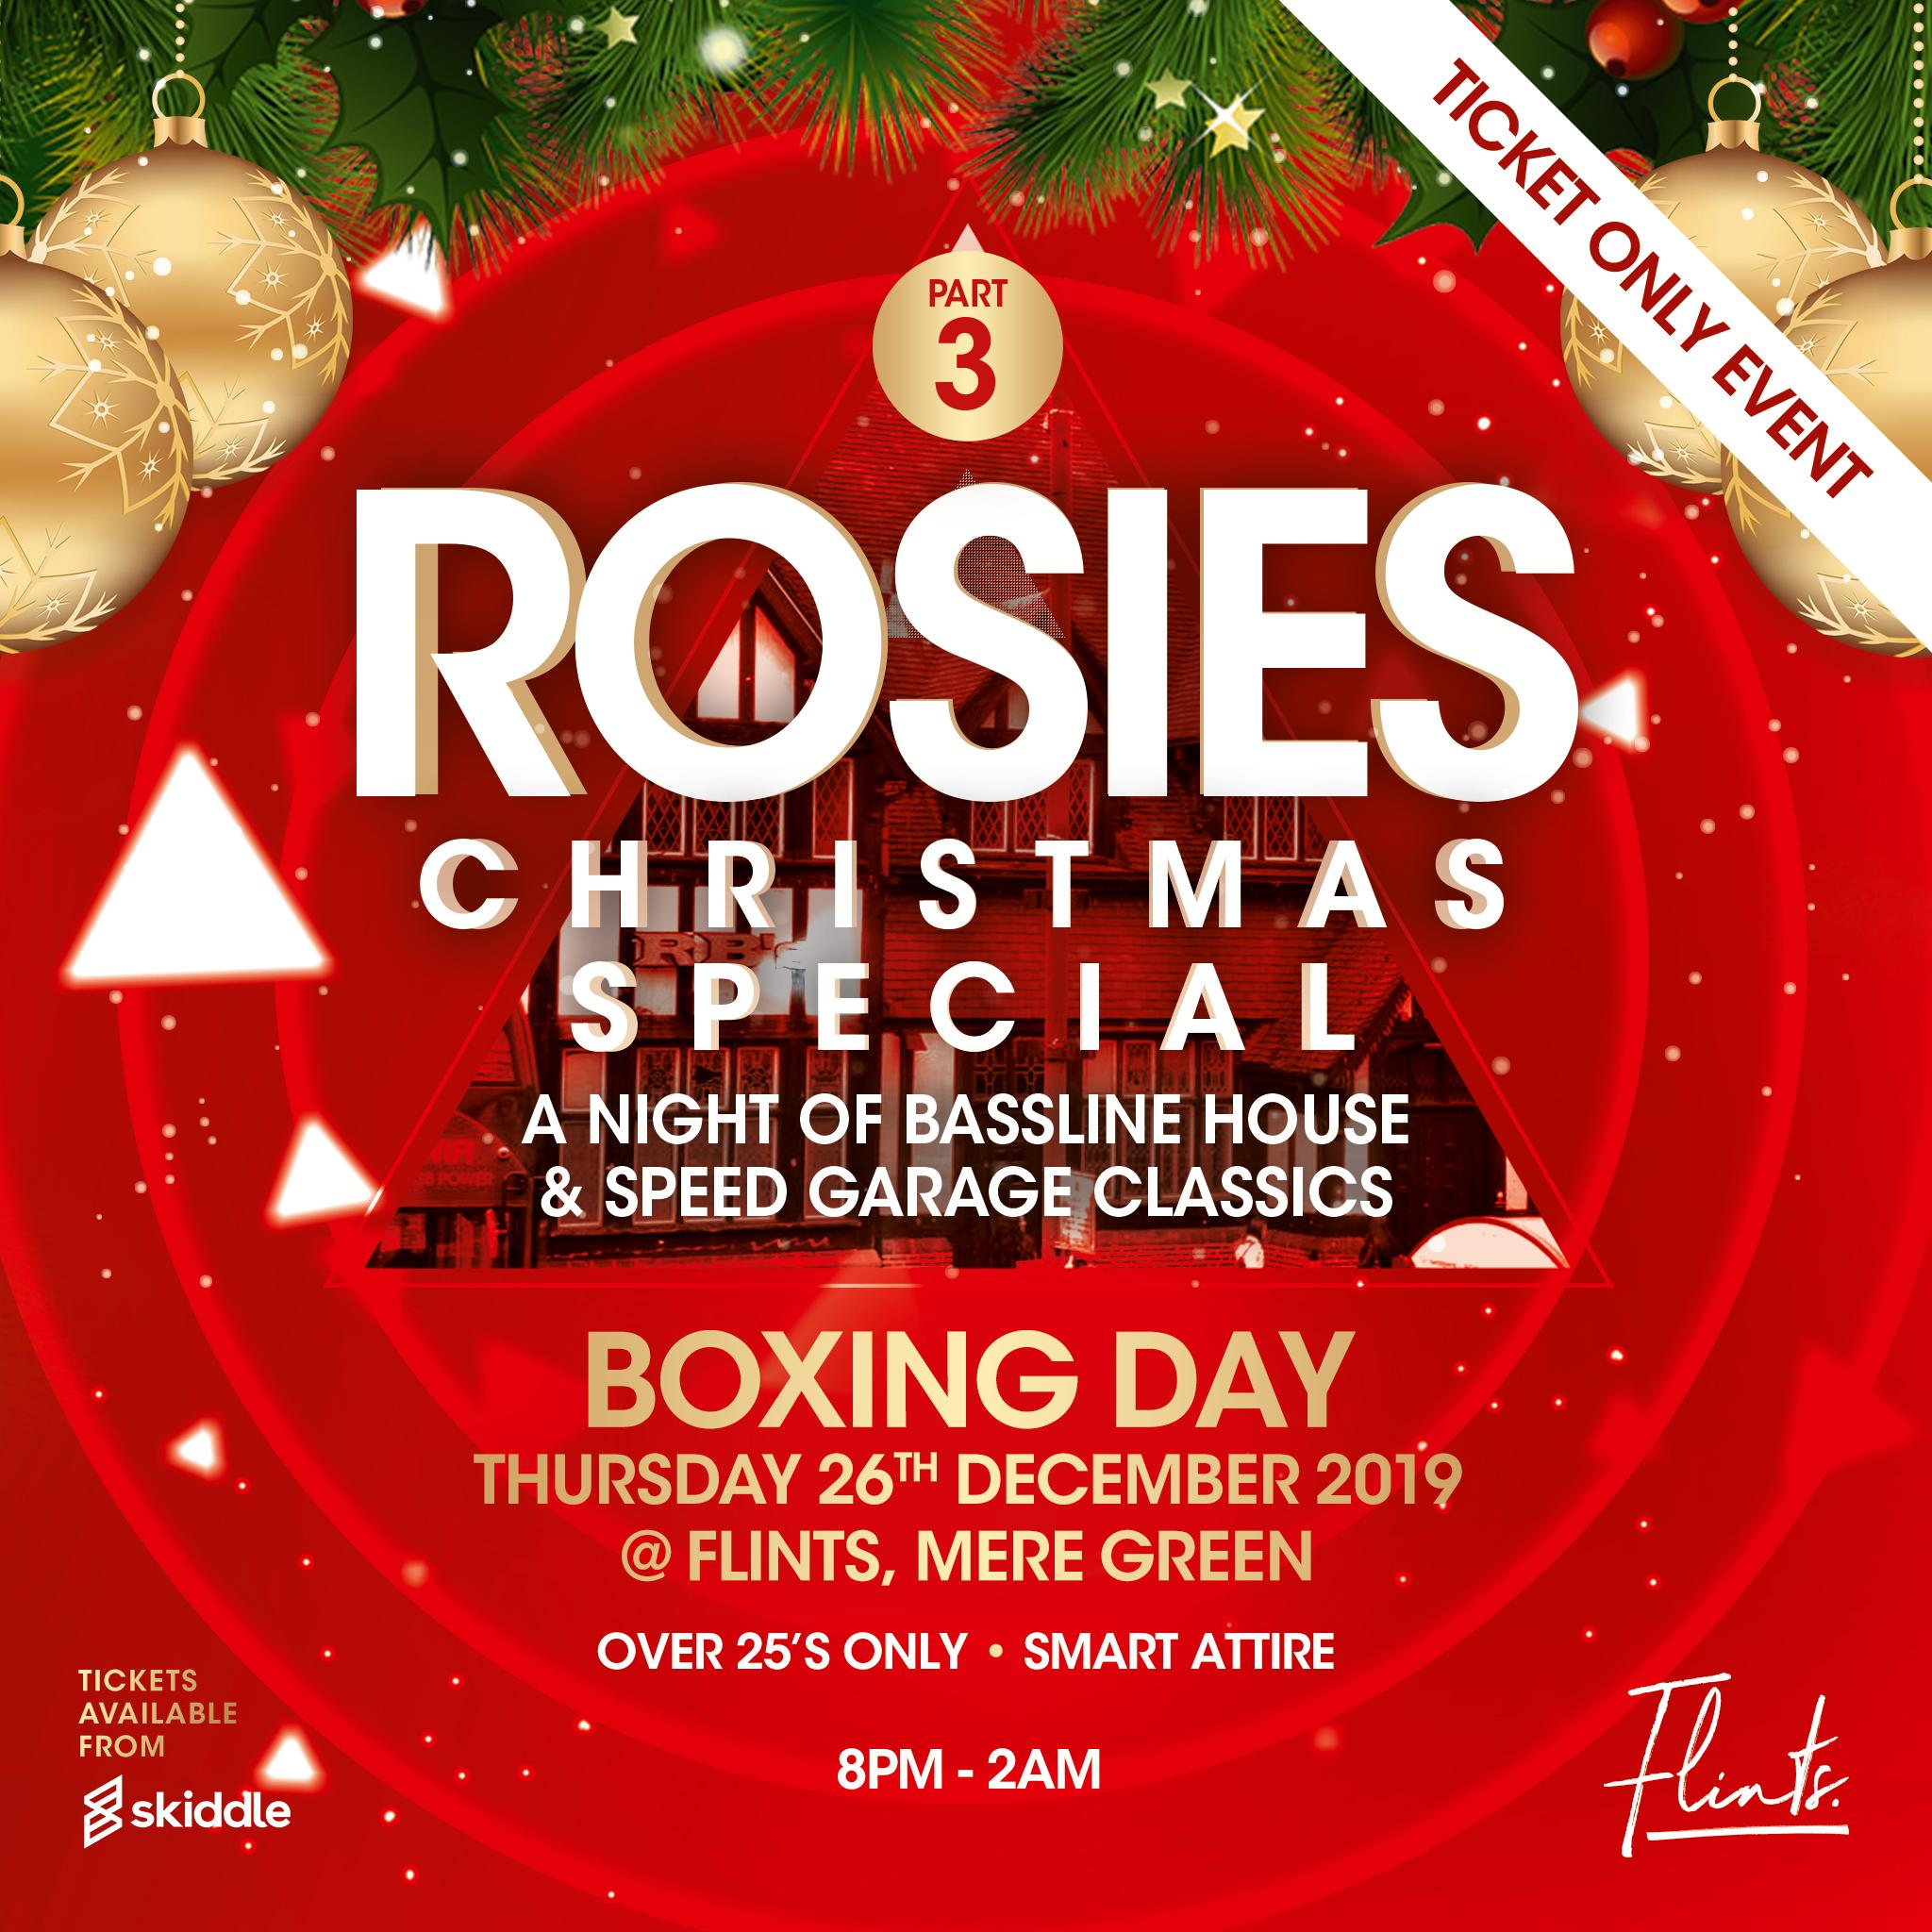 Green Day Christmas.Rosies Part 3 Christmas Special Boxing Day At Flints Bar Mere Green